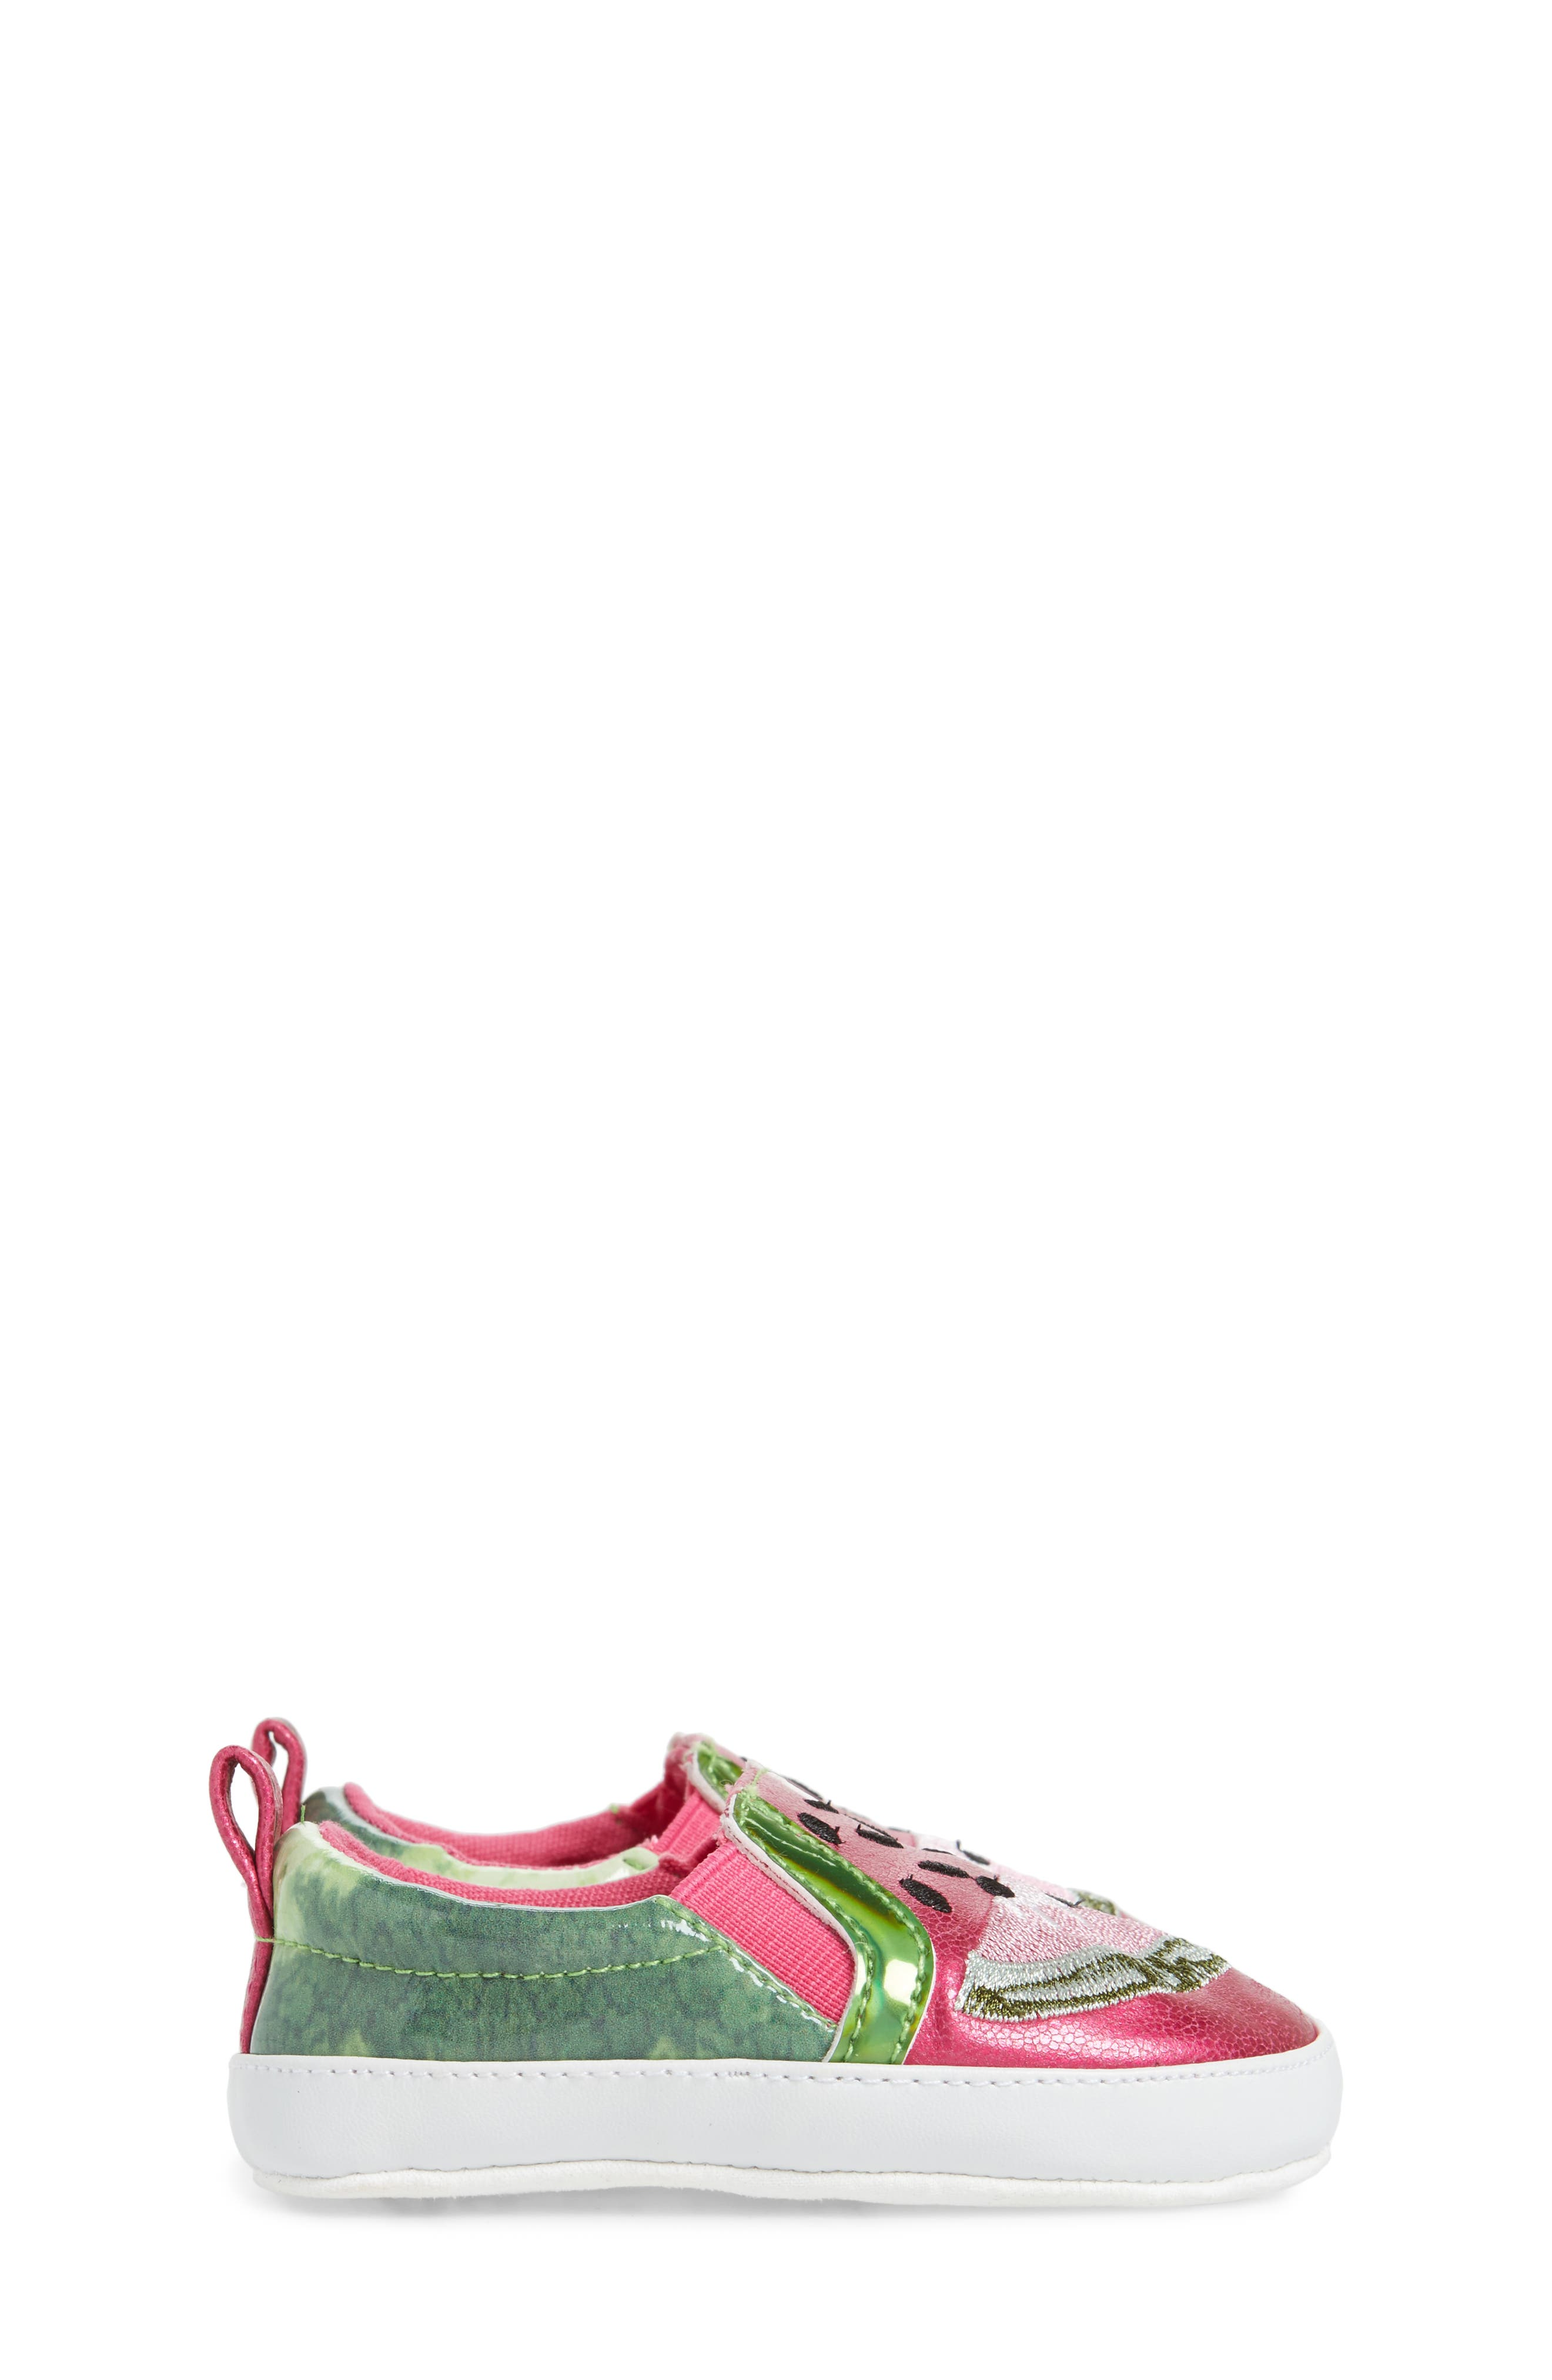 Baby Blane Watermelon Sneaker,                             Alternate thumbnail 4, color,                             653